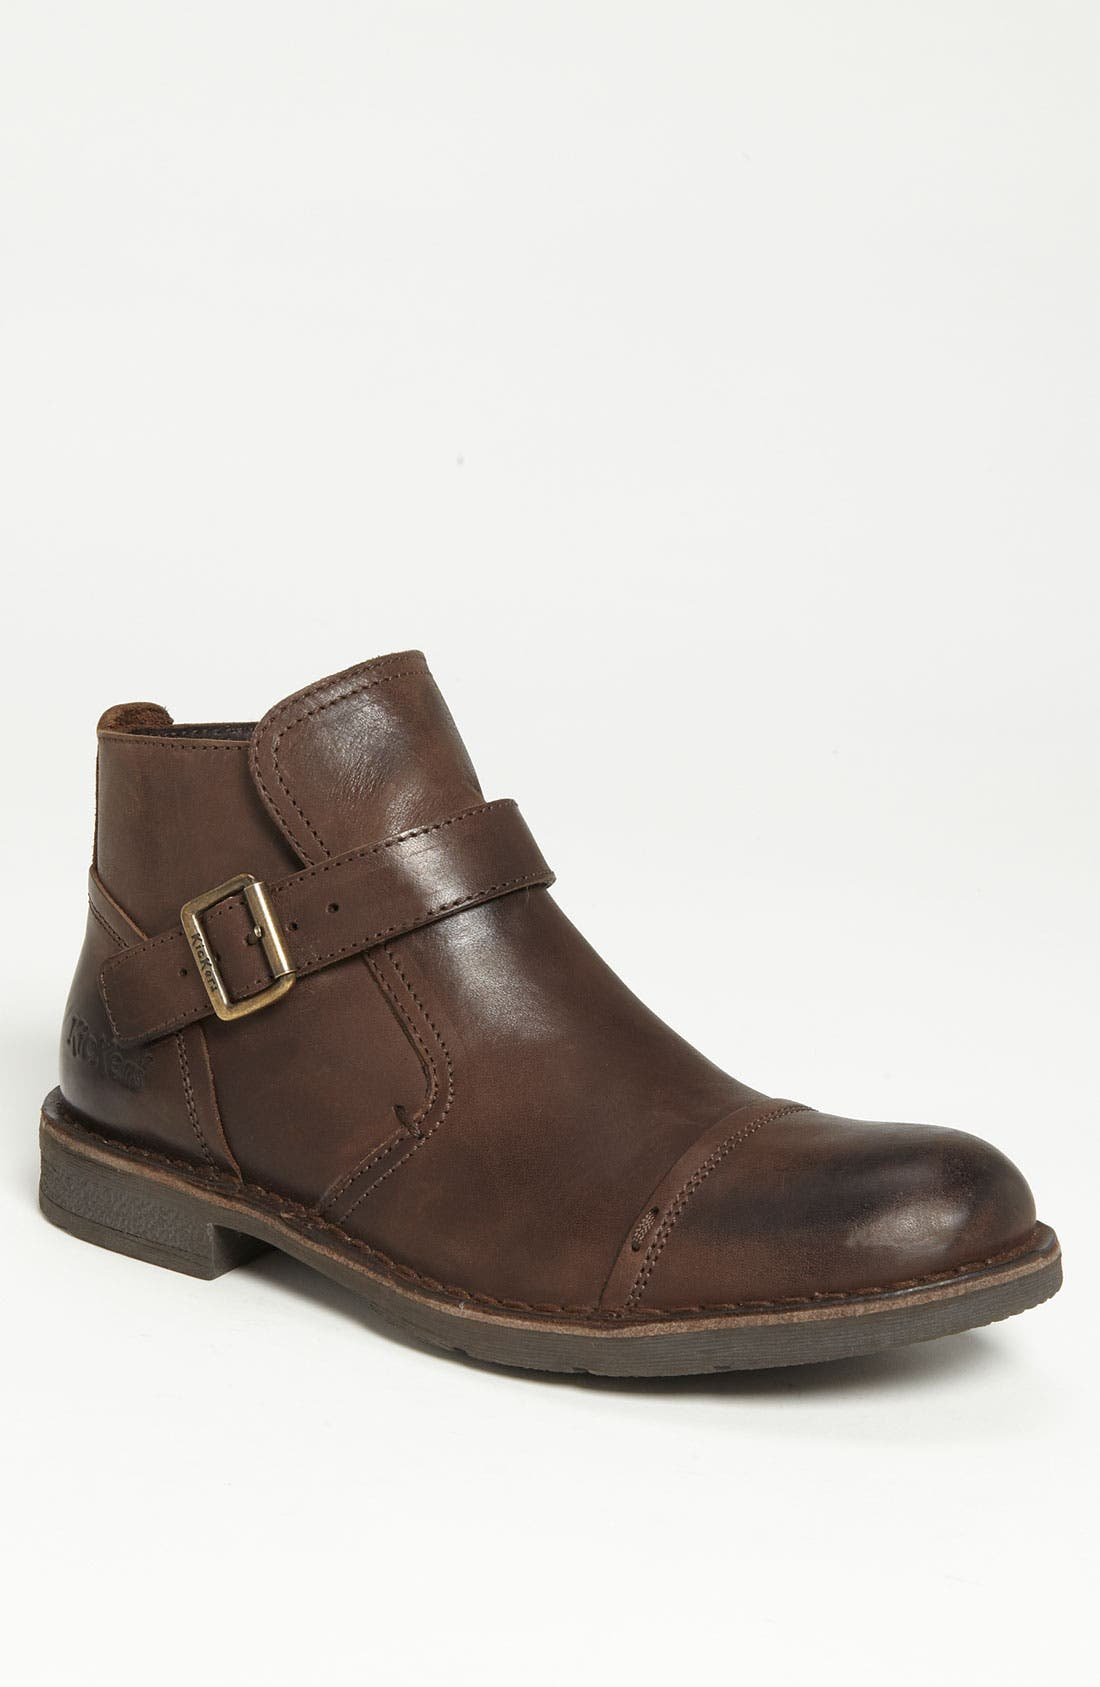 Main Image - Kickers 'Banjo' Cap Toe Boot